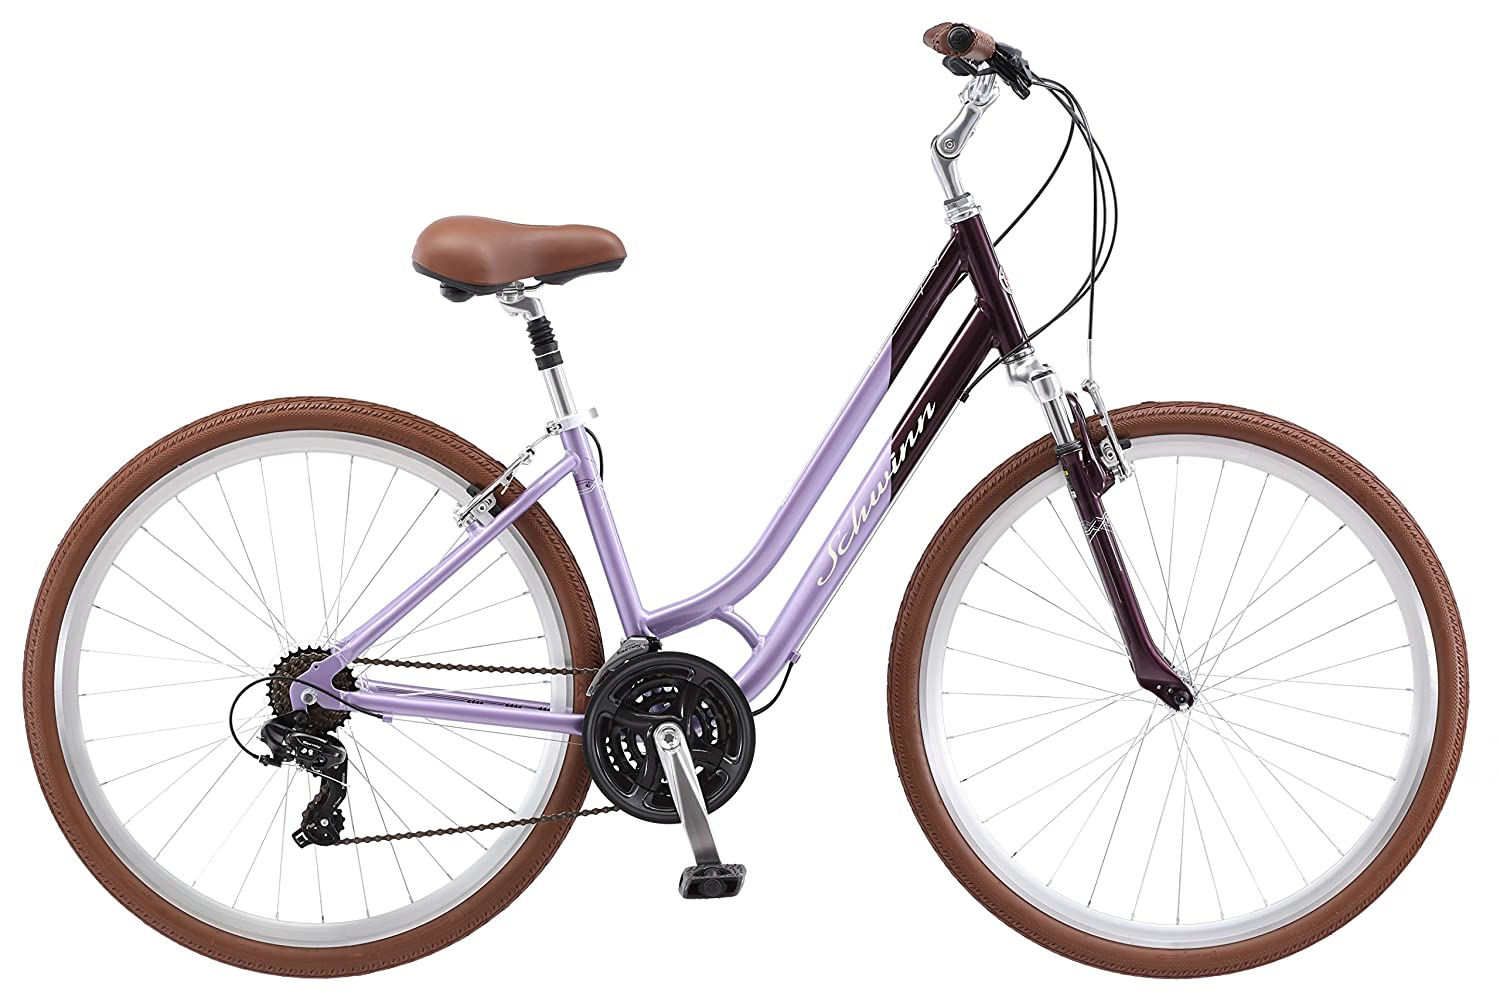 eff960f61b2 Over-Boxed Product S4057A 16 Small Frame Size 16 Small Frame Size Pacific Cycle  Schwinn Capitol Womens Hybrid ...